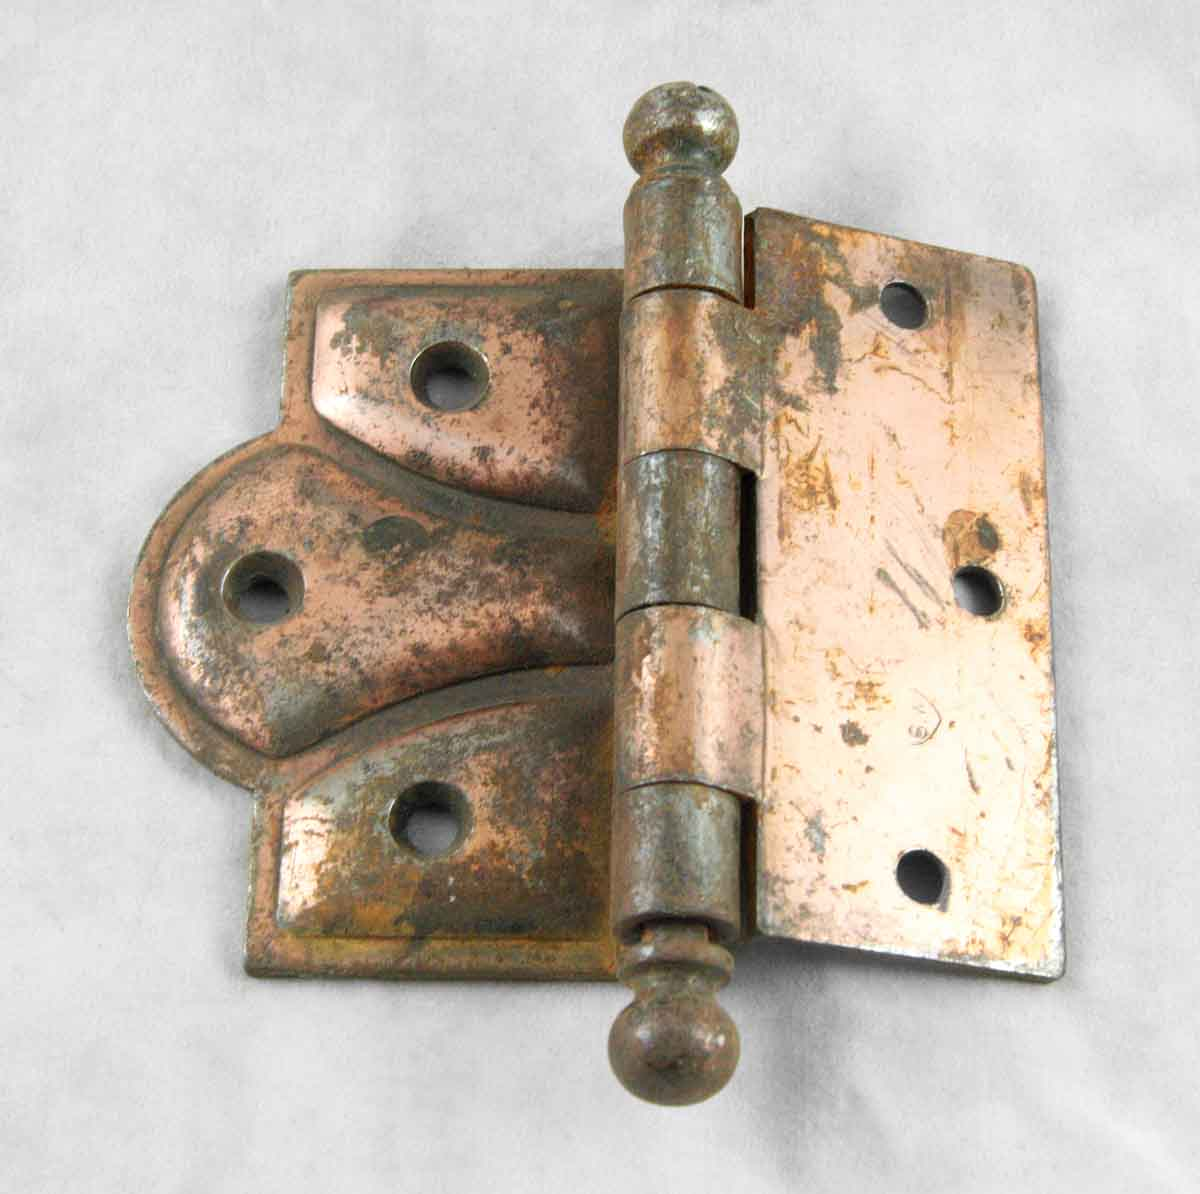 Ornate Copper Over Steel Furniture Hinge